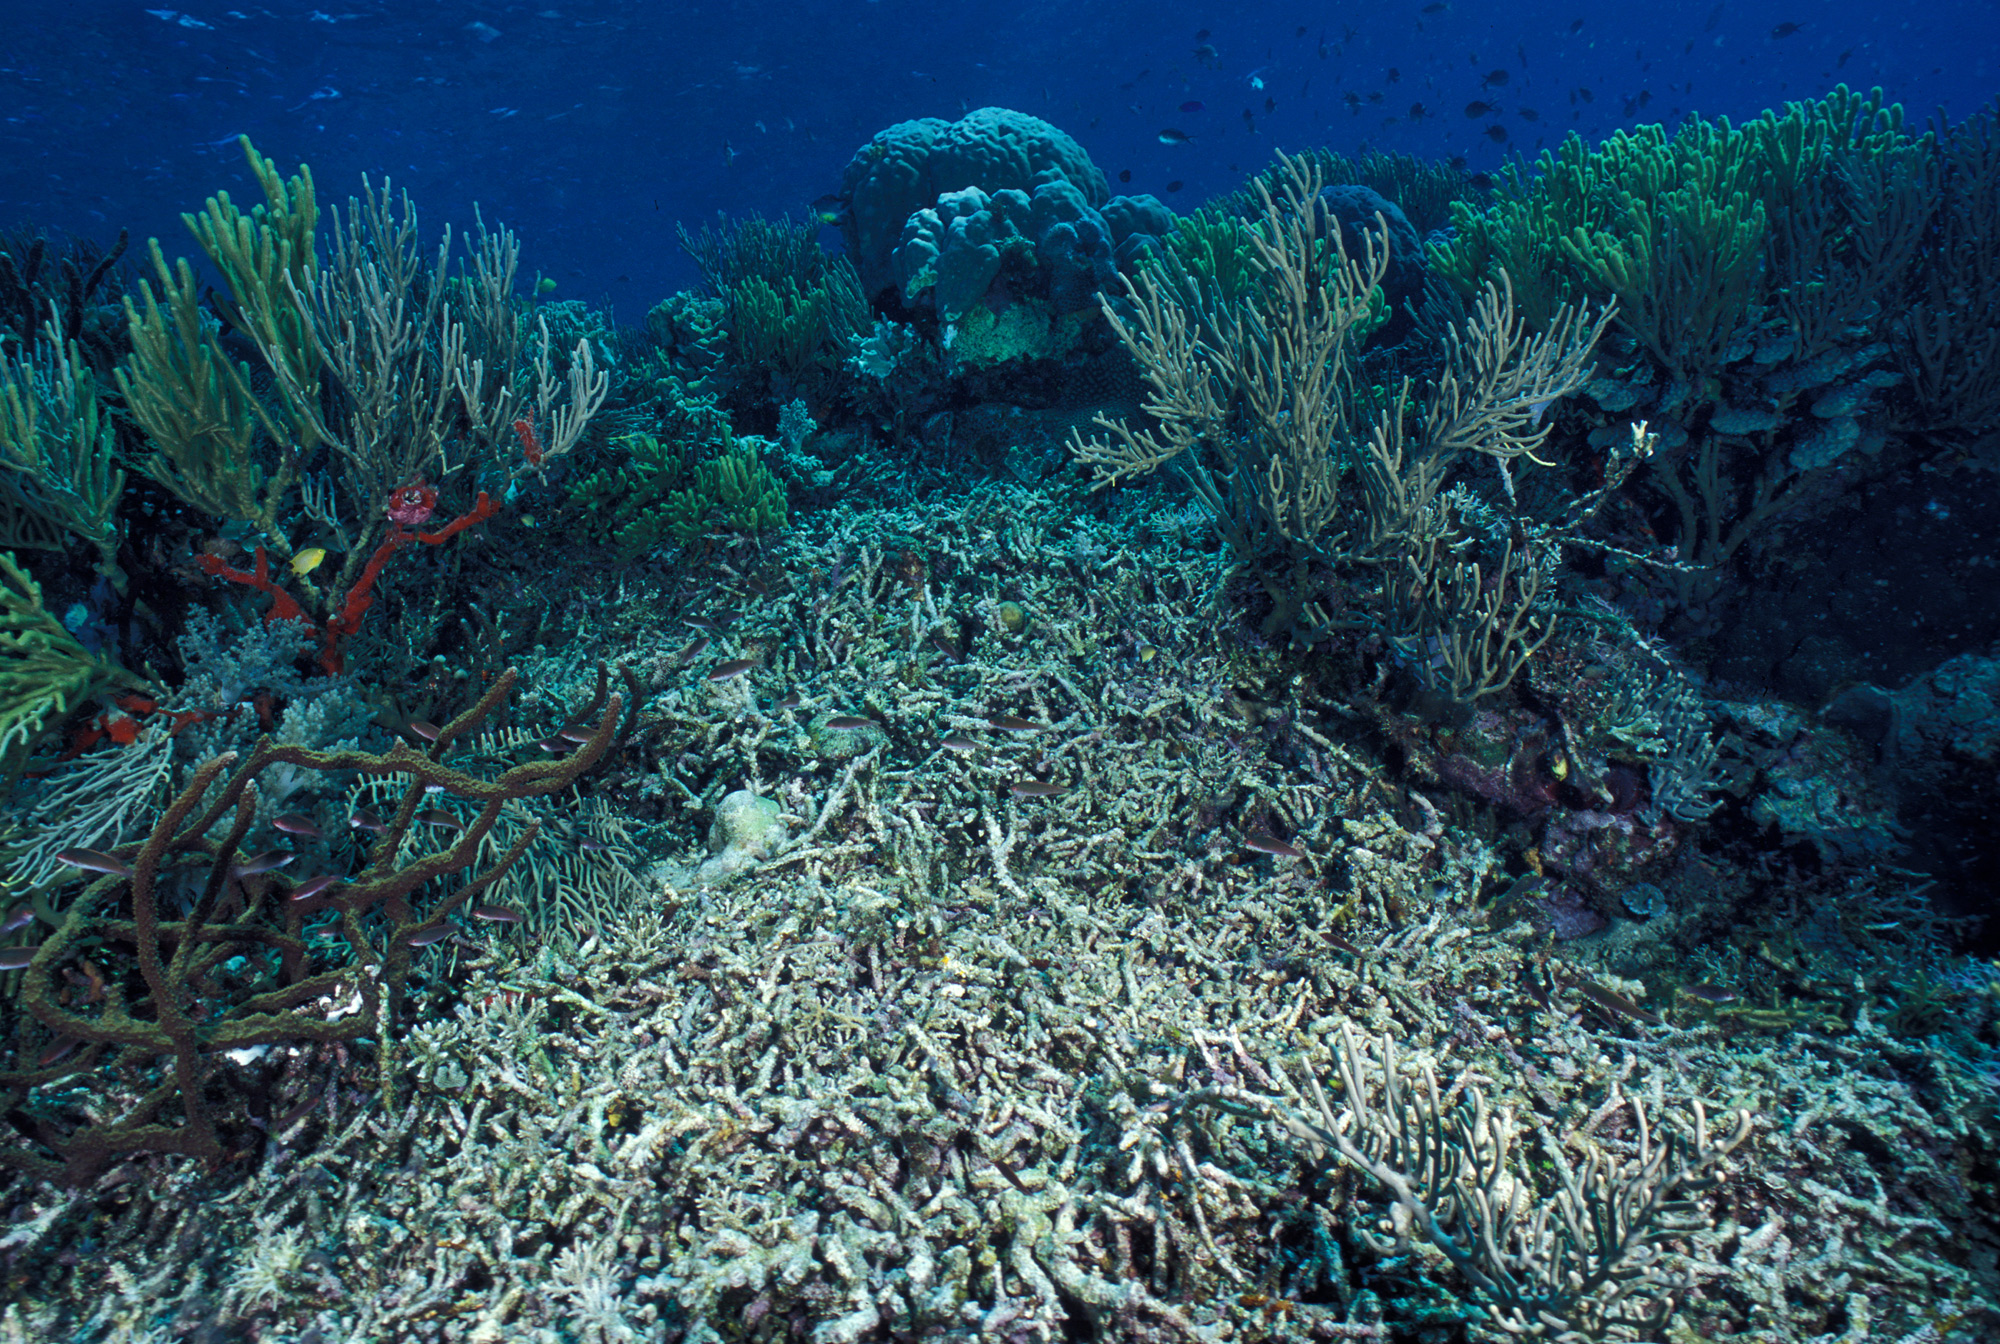 A coral reef covered by silt and sand in the Western Pacific Ocean.<div class='credit'><strong>Credit:</strong> A coral reef covered by silt and sand in the Western Pacific Ocean.</div>